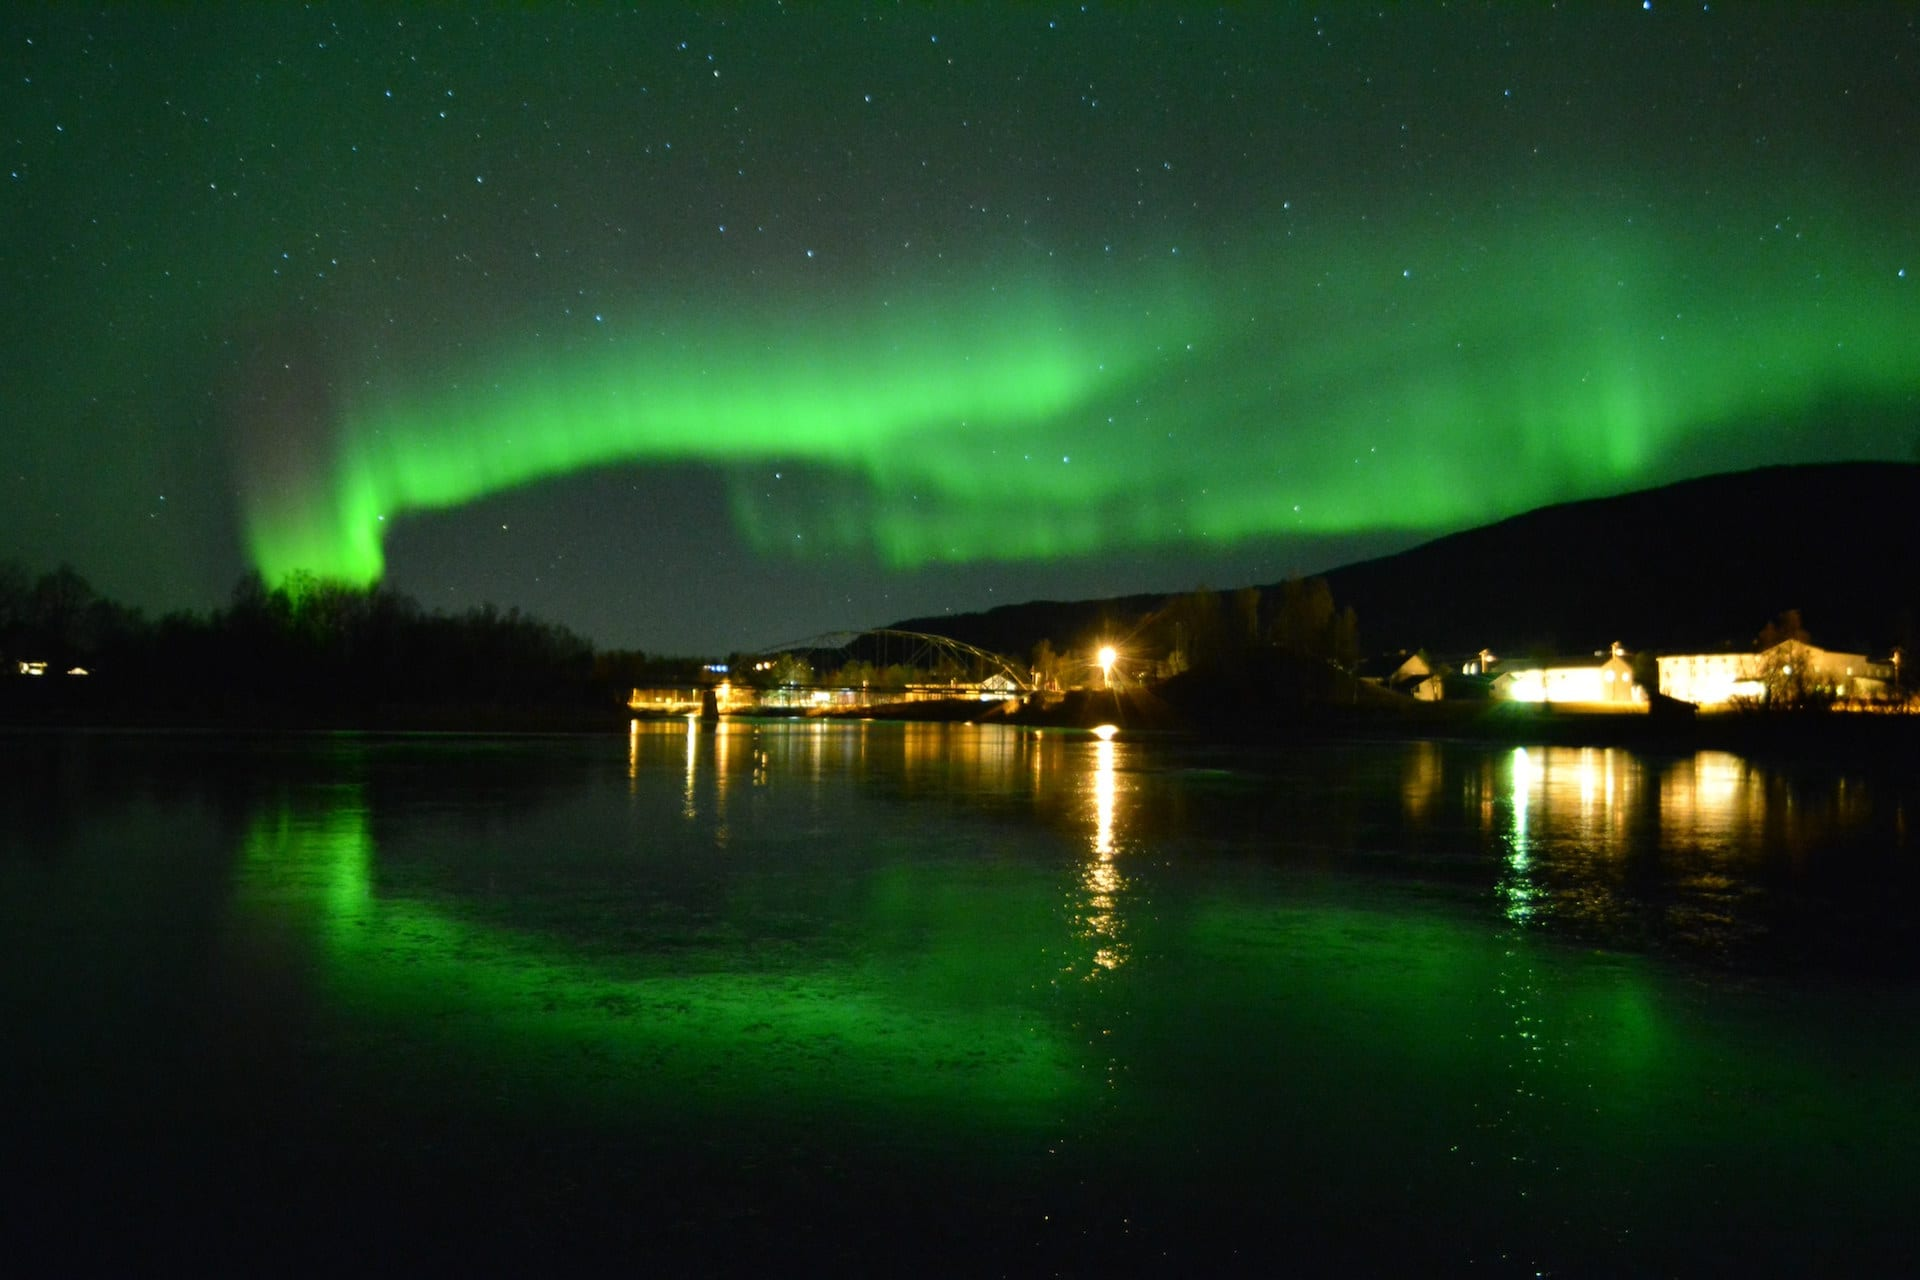 Green Northern Lights show over Rundhaug Gjestegård in Norway